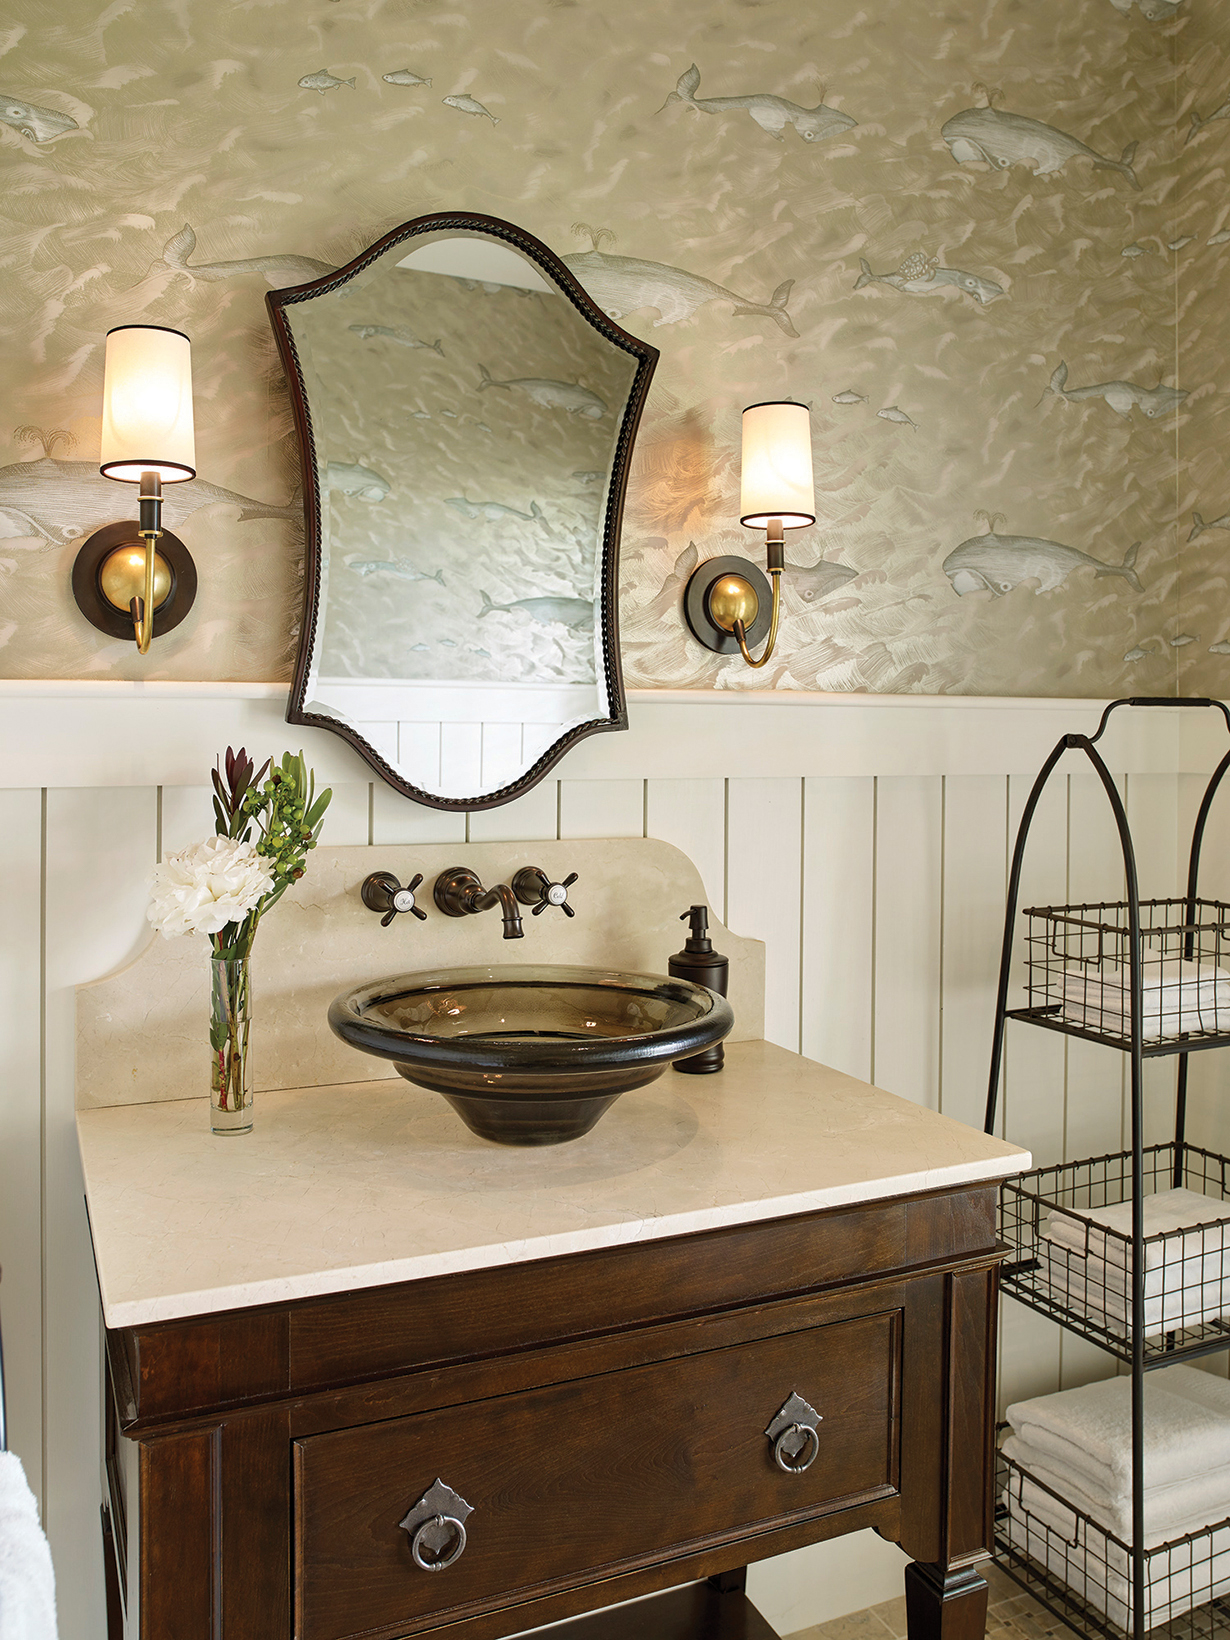 Knickerbocker Group Town Landing bathroom